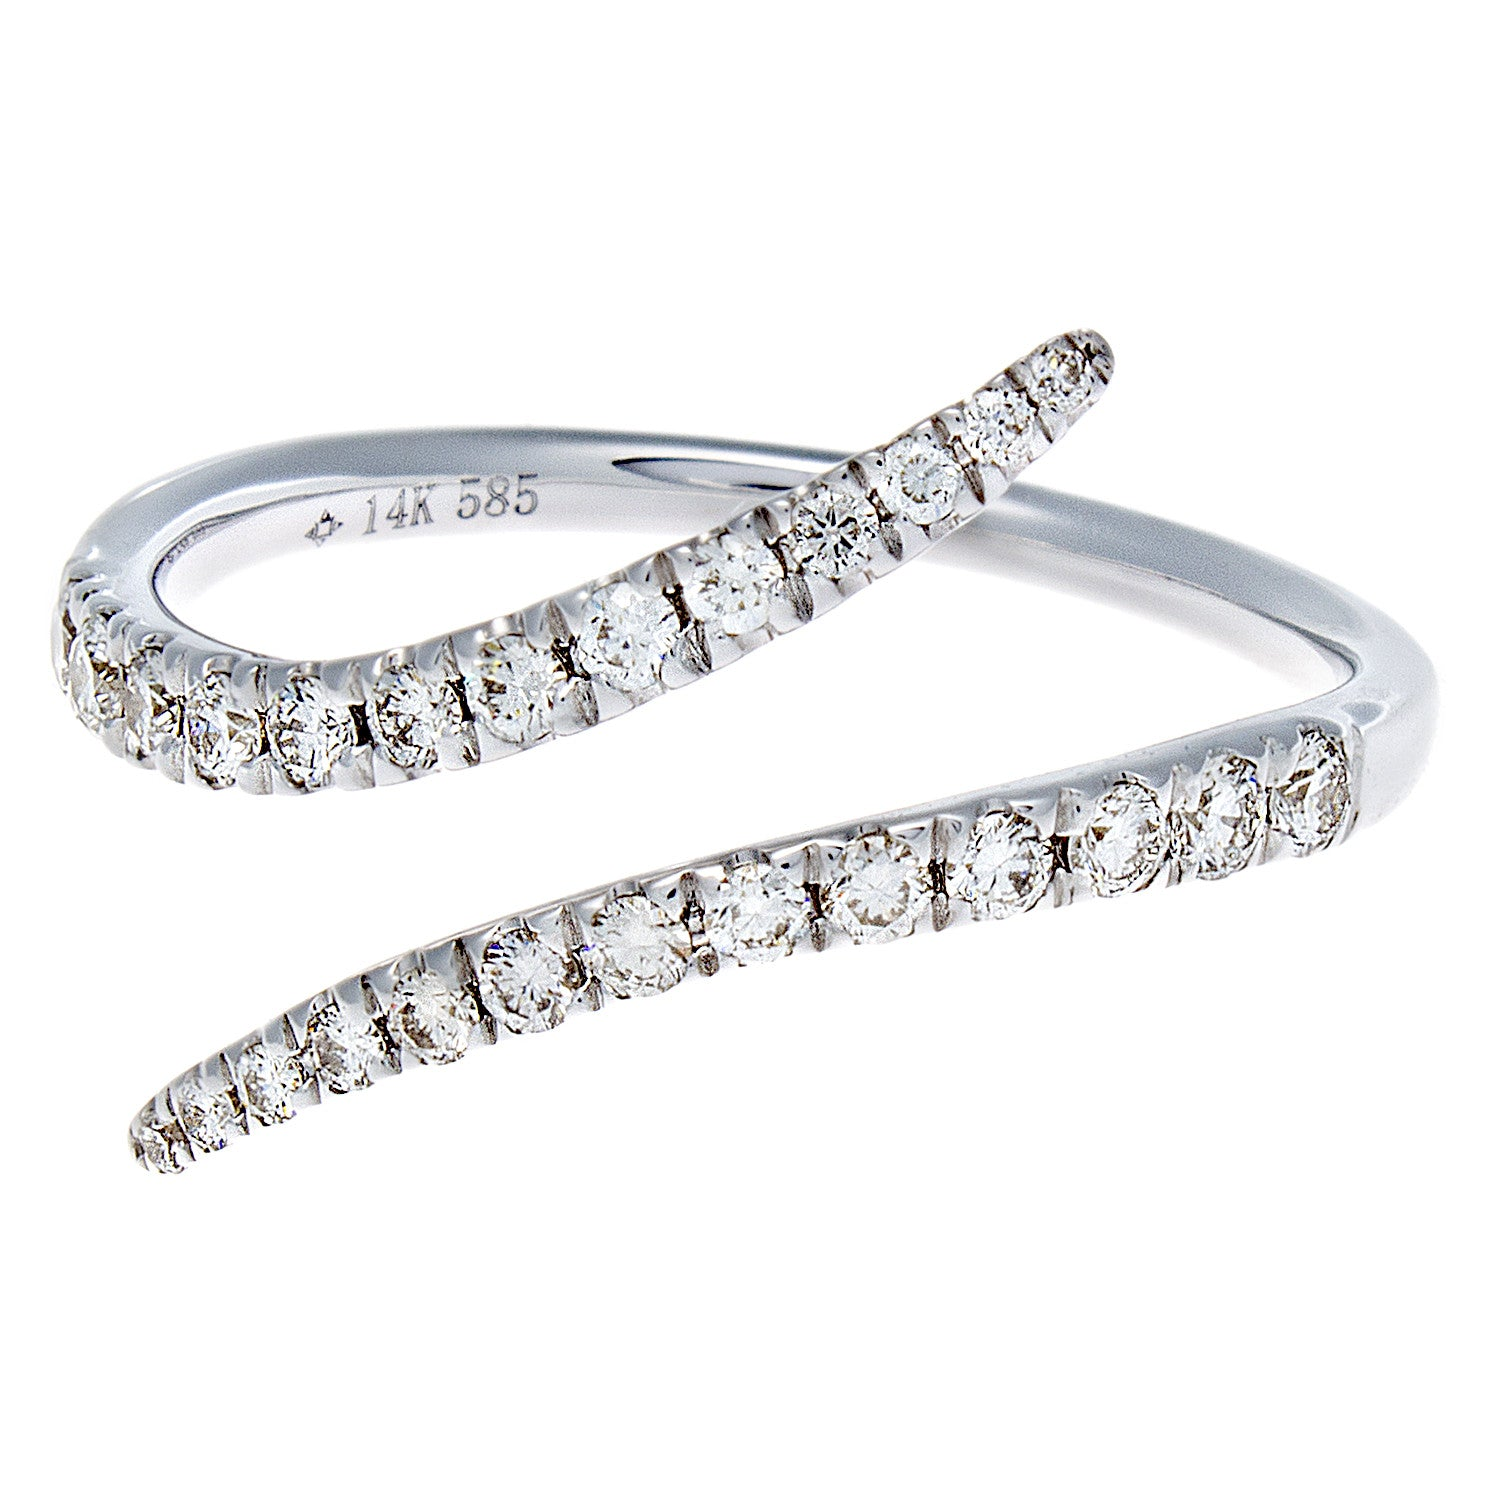 Diamond Serpentine White Gold Ring- SOLD/CAN BE SPECIAL ORDERED WITH 4-6 WEEKS DELIVERY TIME FRAME